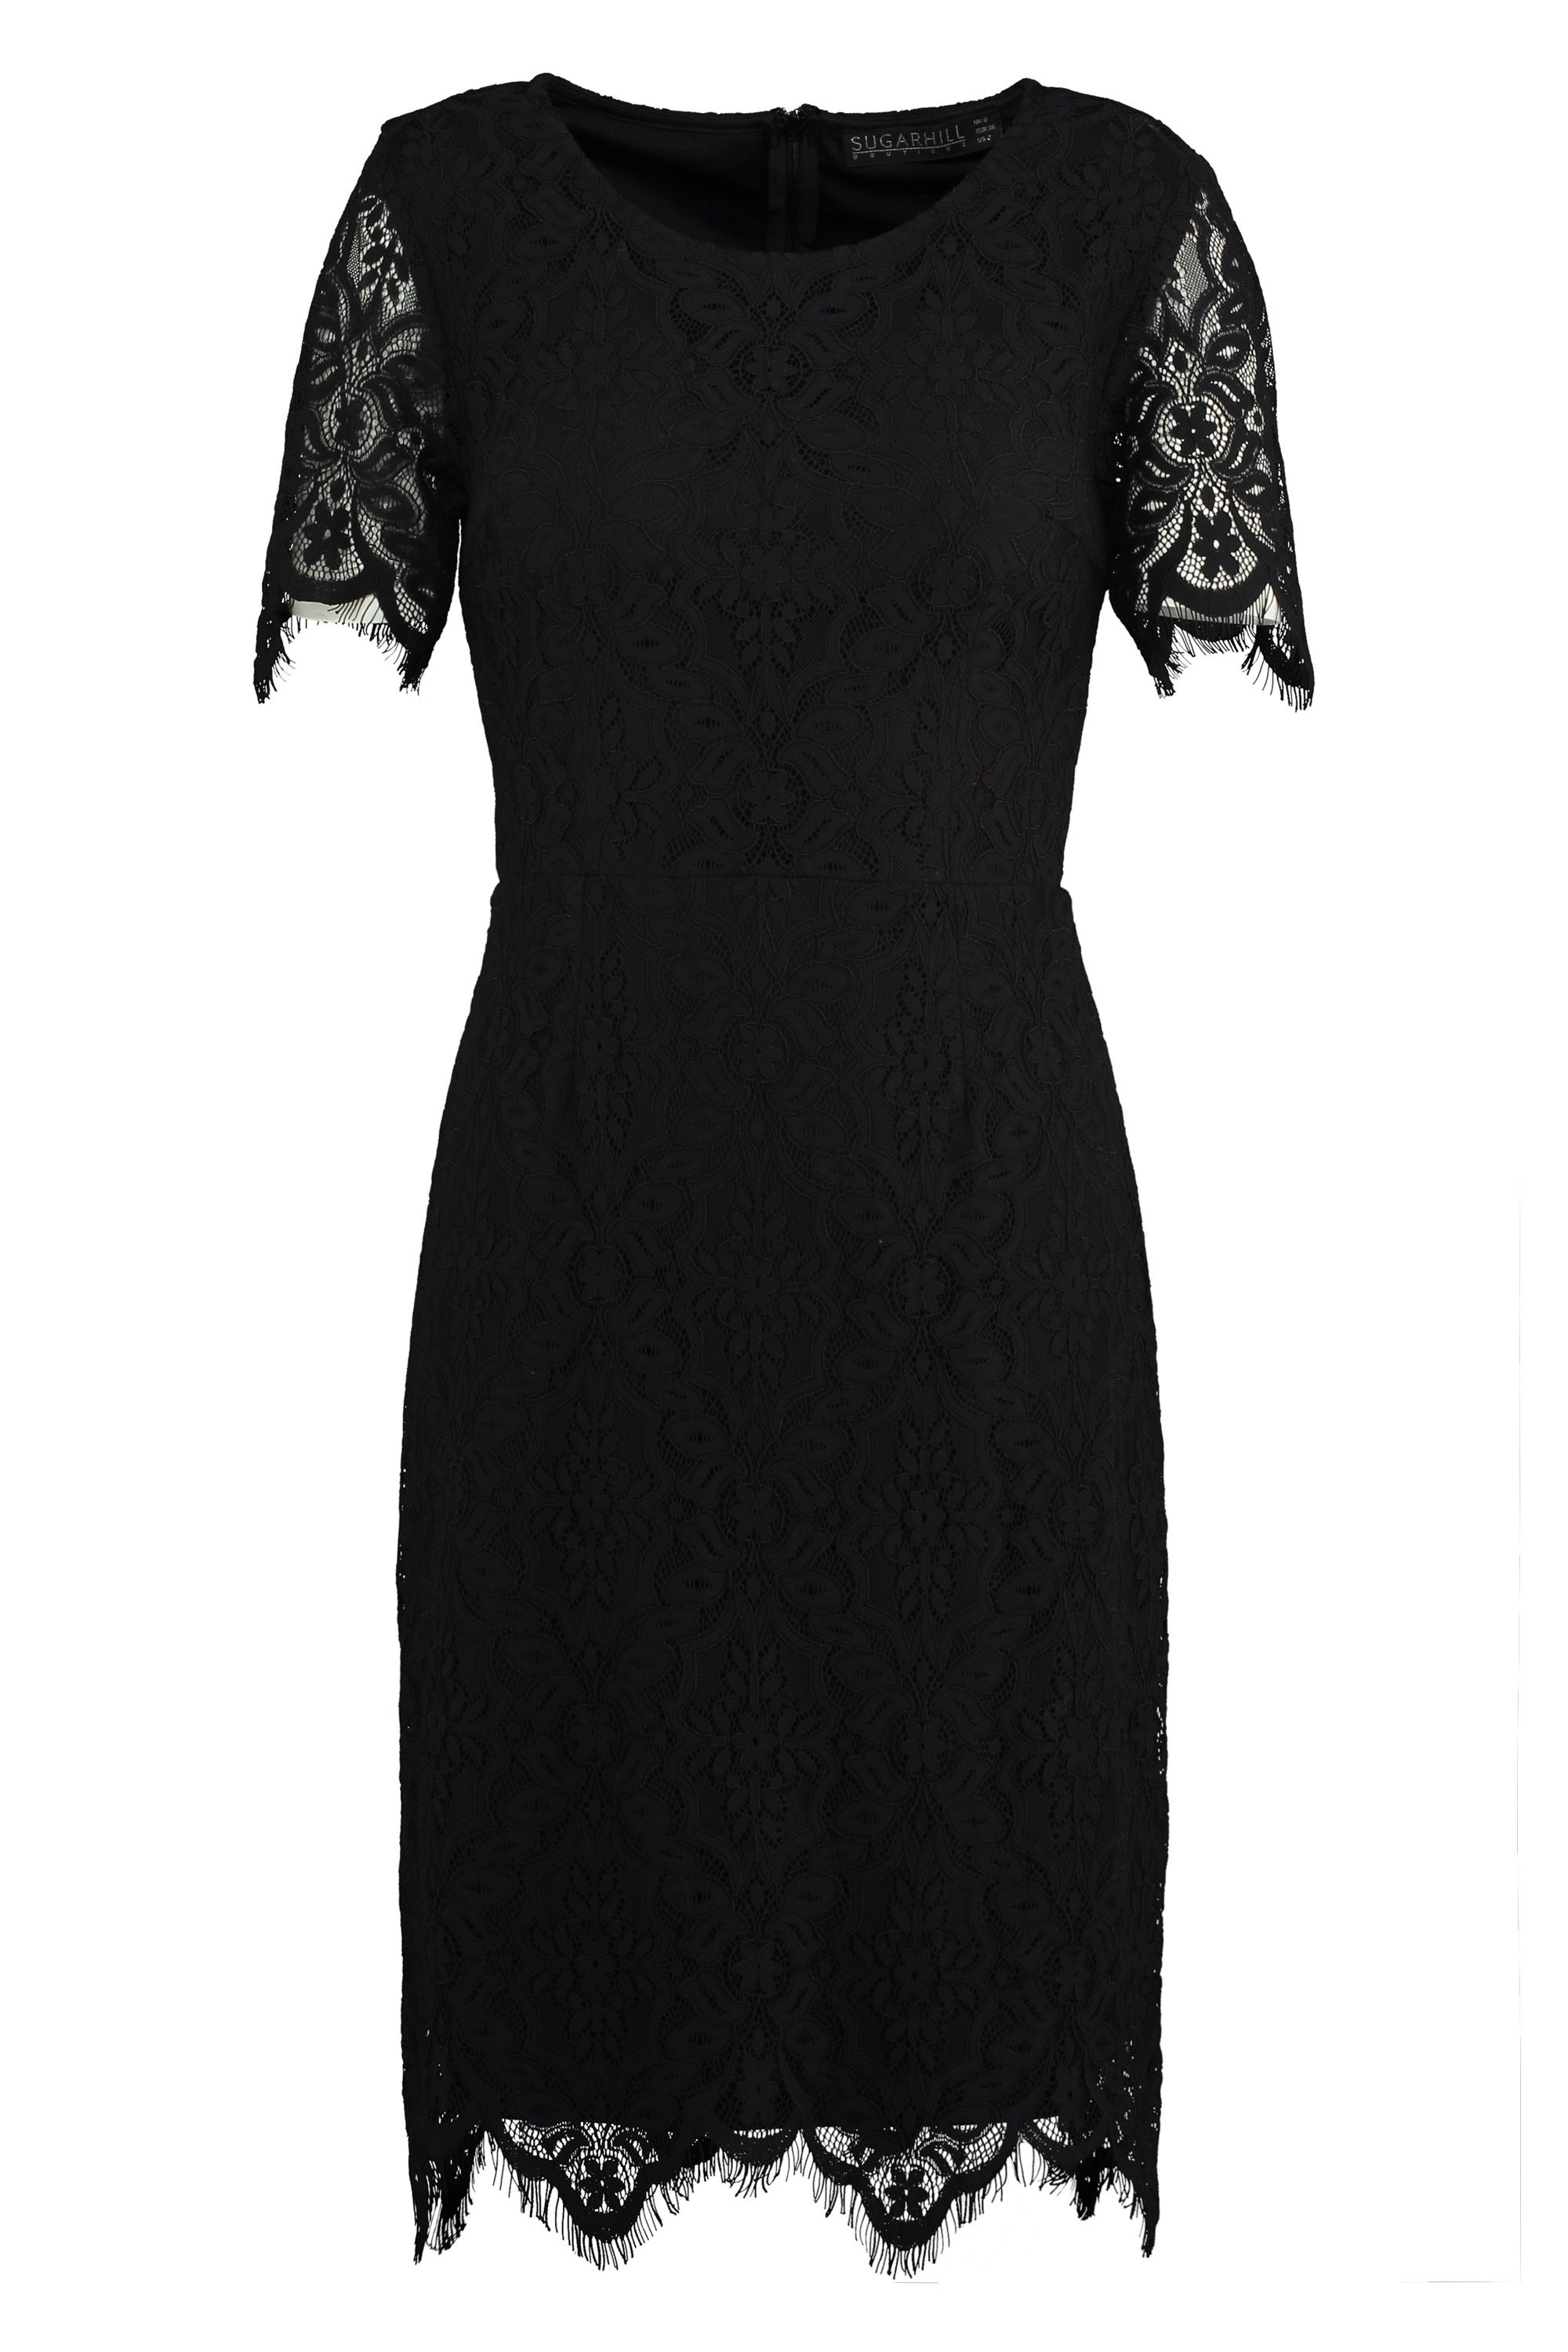 Sugarhill Boutique Dawn ALine Lace Dress Jet Black